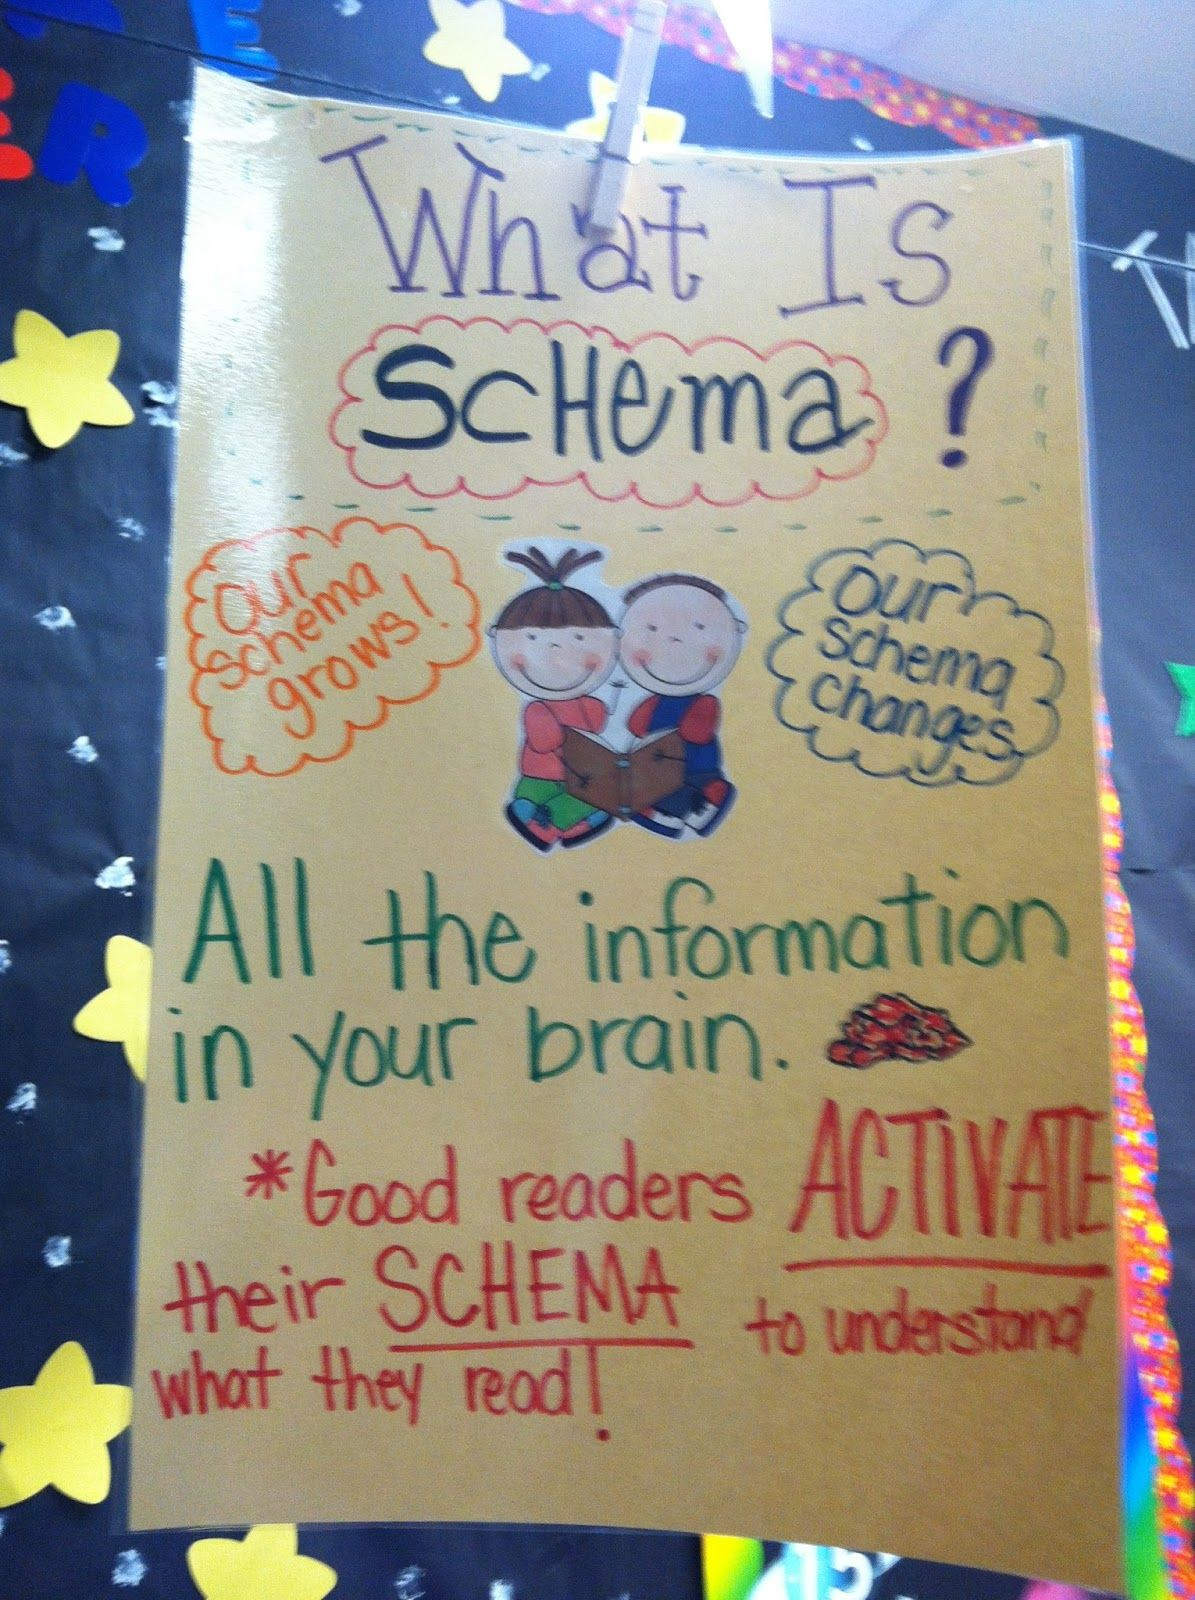 8 Best Schema Anchor Charts For Kindergarten Images On All